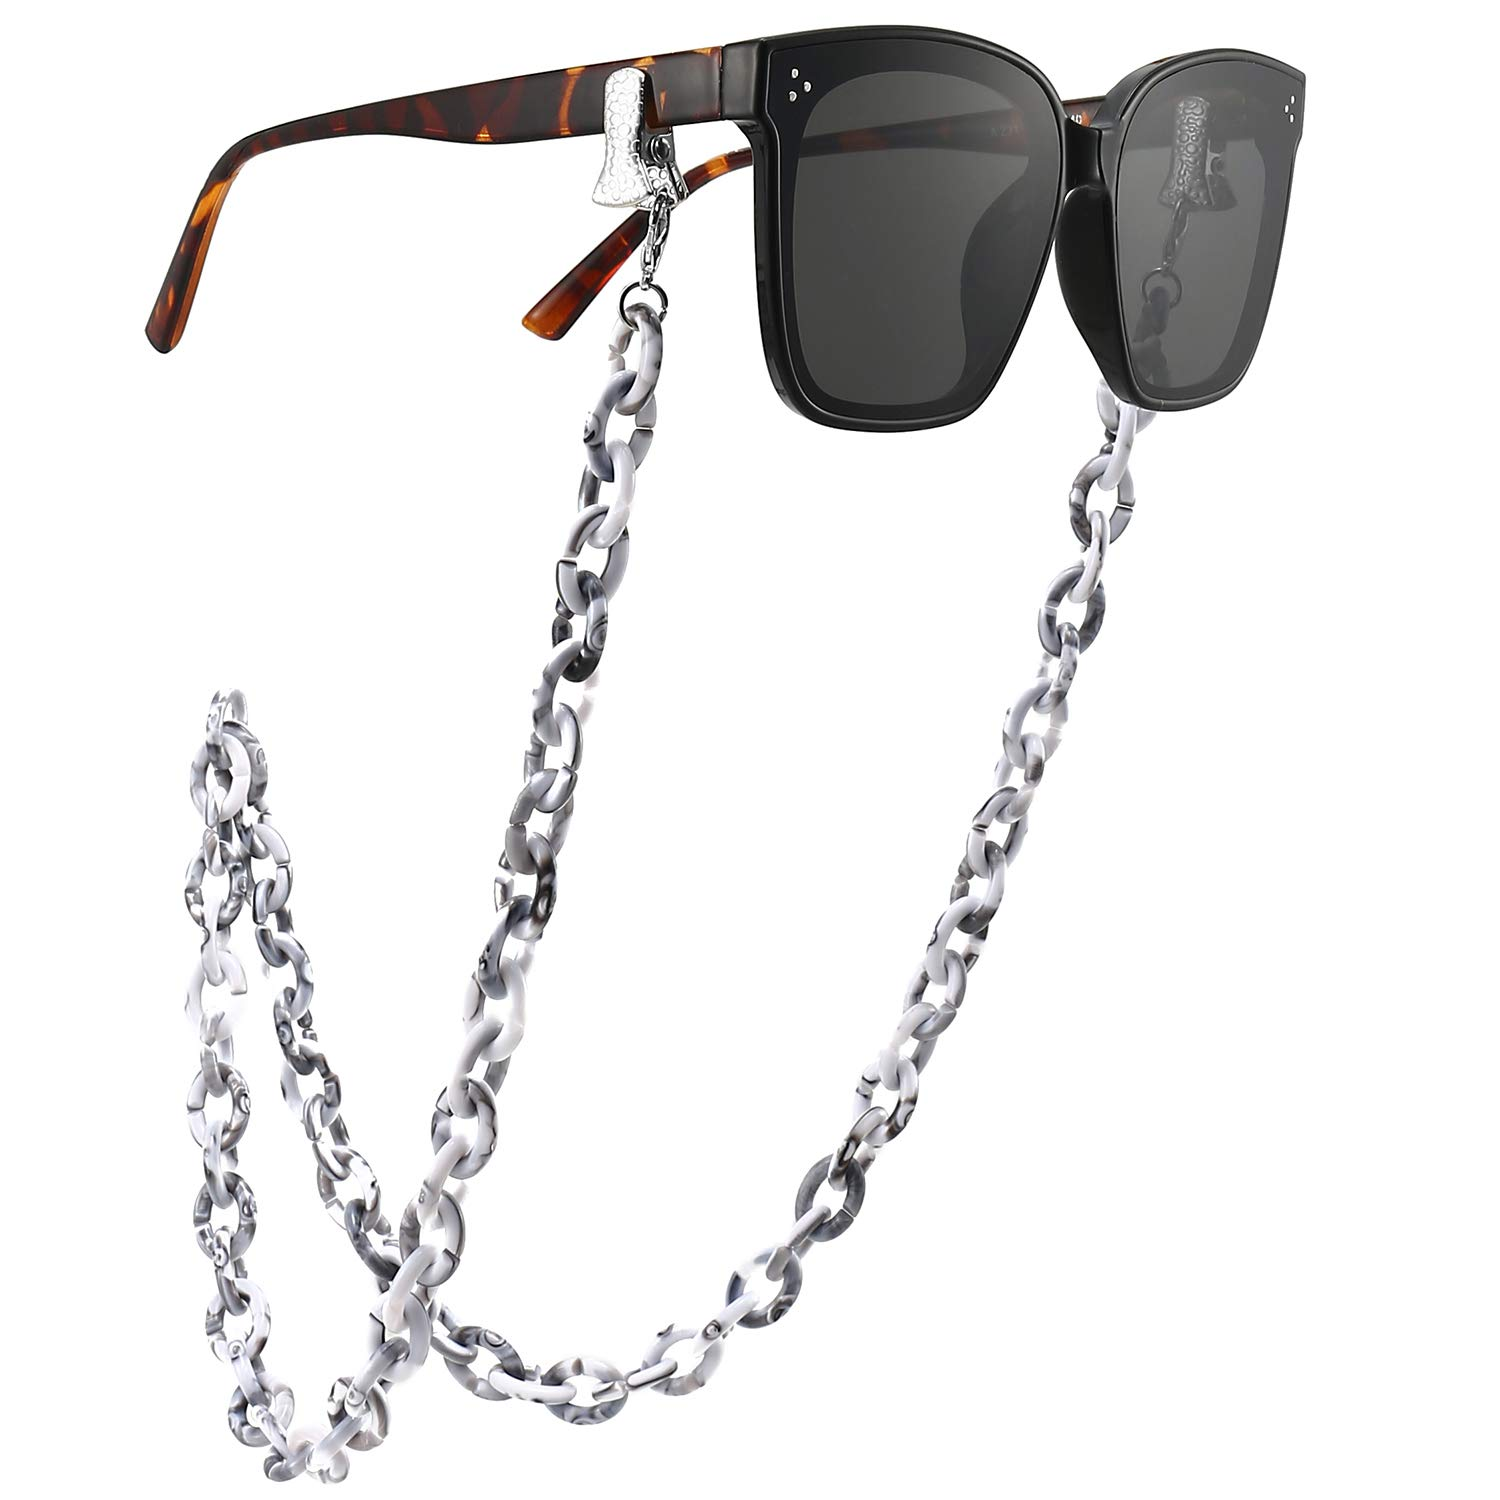 Sunglass ChainMask holder necklace 70cm marble colour hawksbill arylic Women Sunglasses Strap 1 strand Fashion Glasses Necklace